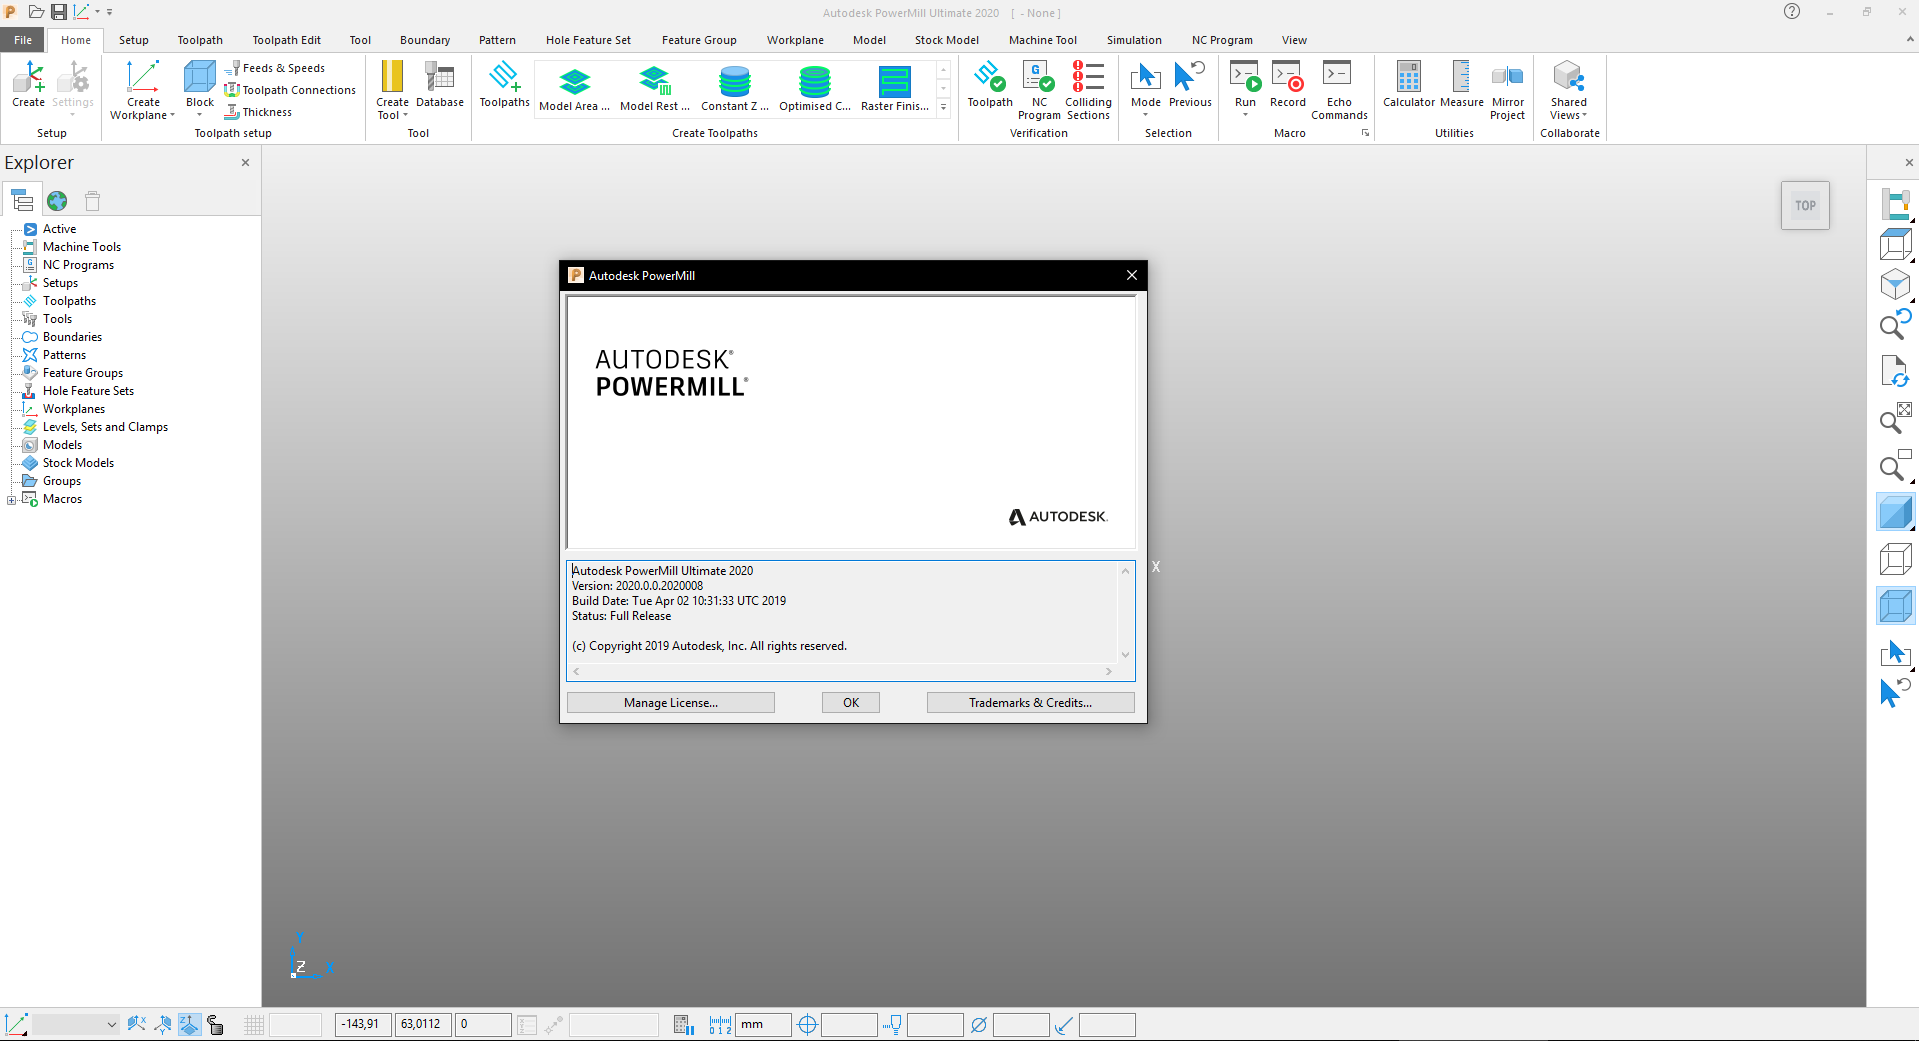 Programming with Autodesk PowerMill Ultimate 2020 full license